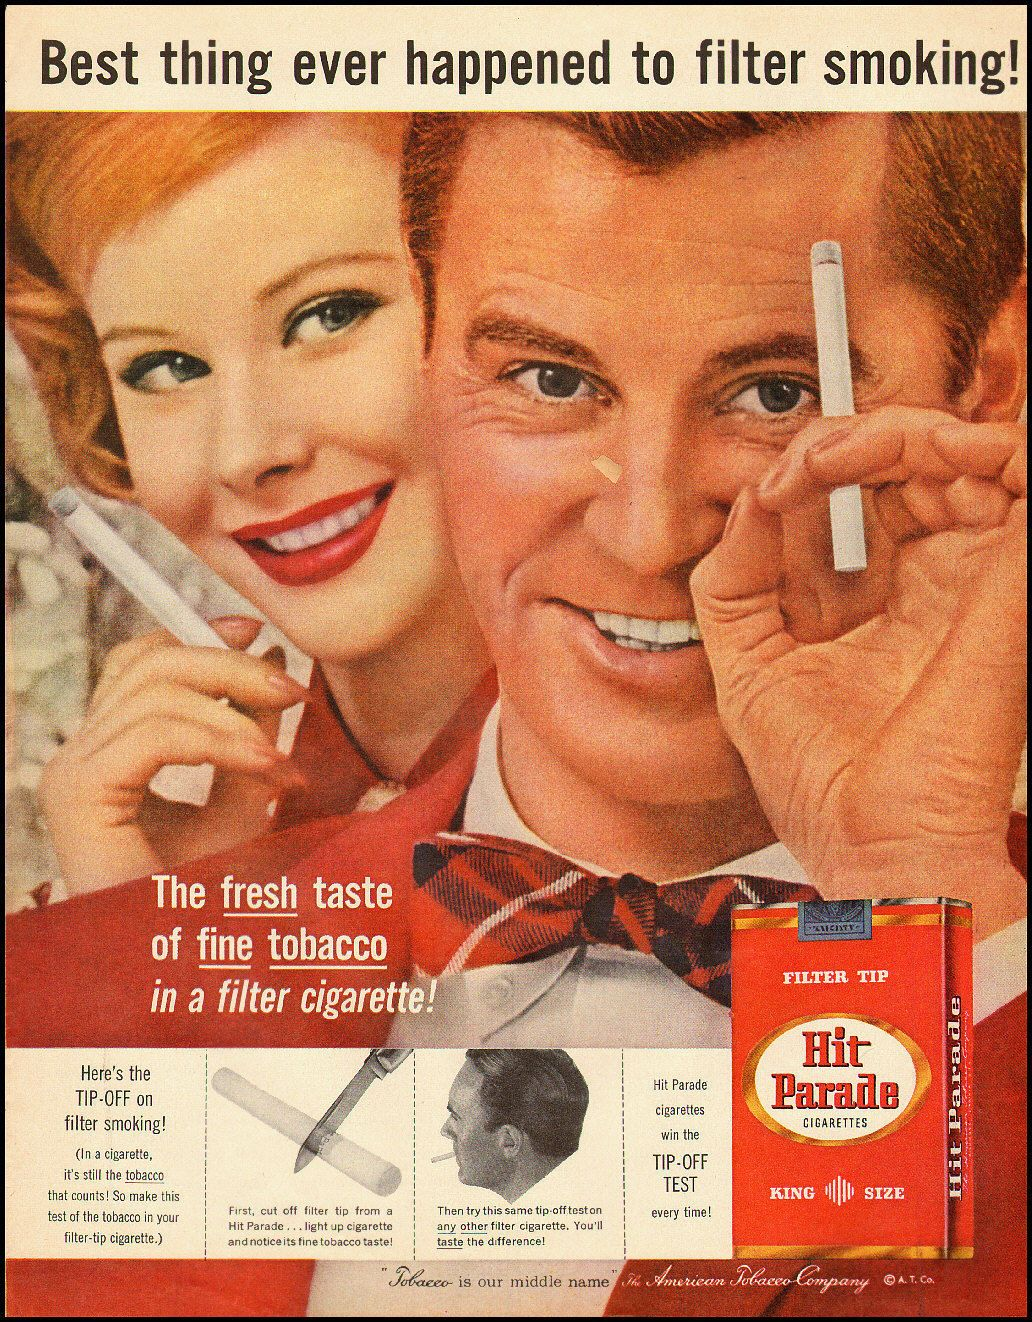 1959 Vintage Tobacco Ad Hit Parade Filter Tip Cigarettes 122012 Advertising Ads Old Advertisements